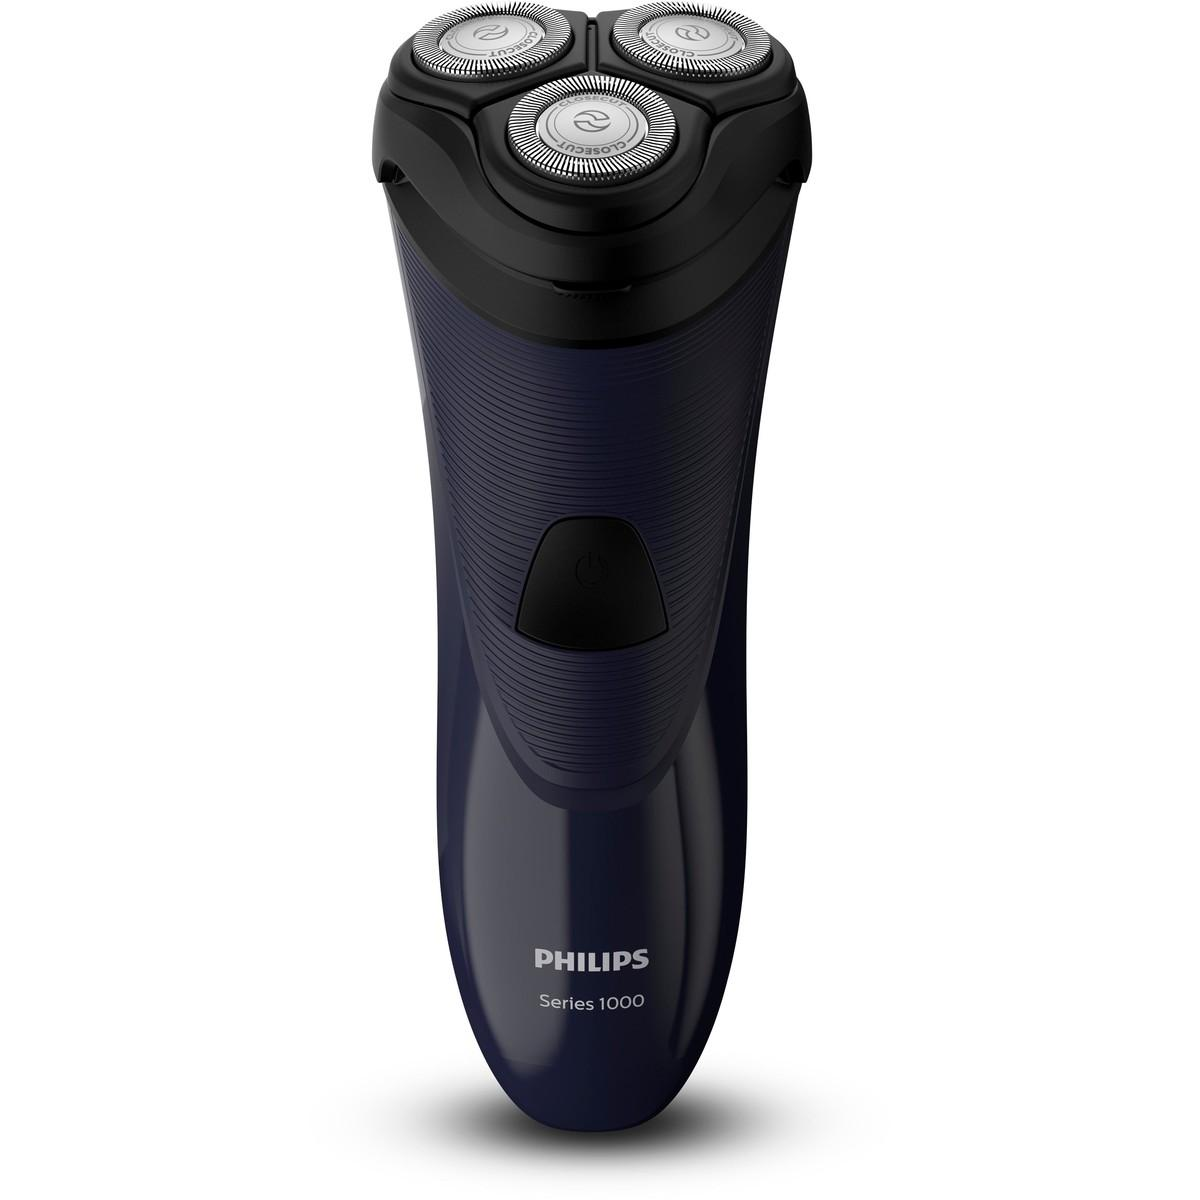 Philips Series 1000 Electric Shaver – S1100/04